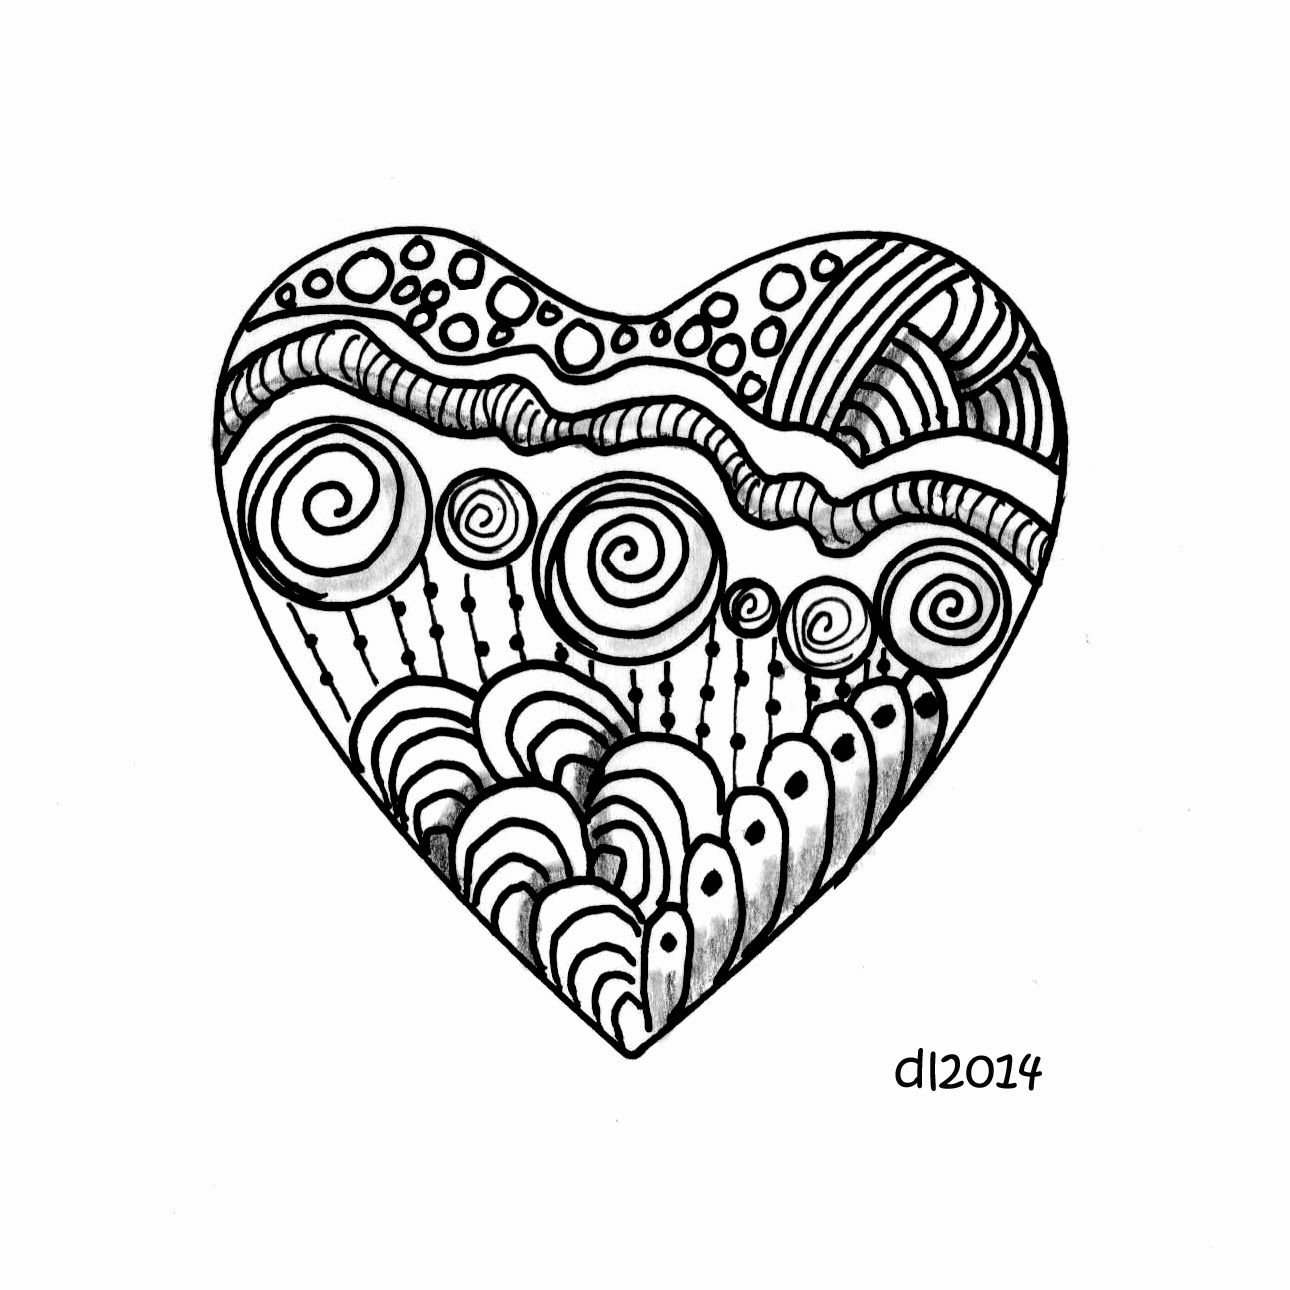 Simple Zentangle Heart With Images Heart Doodle Doodle Art